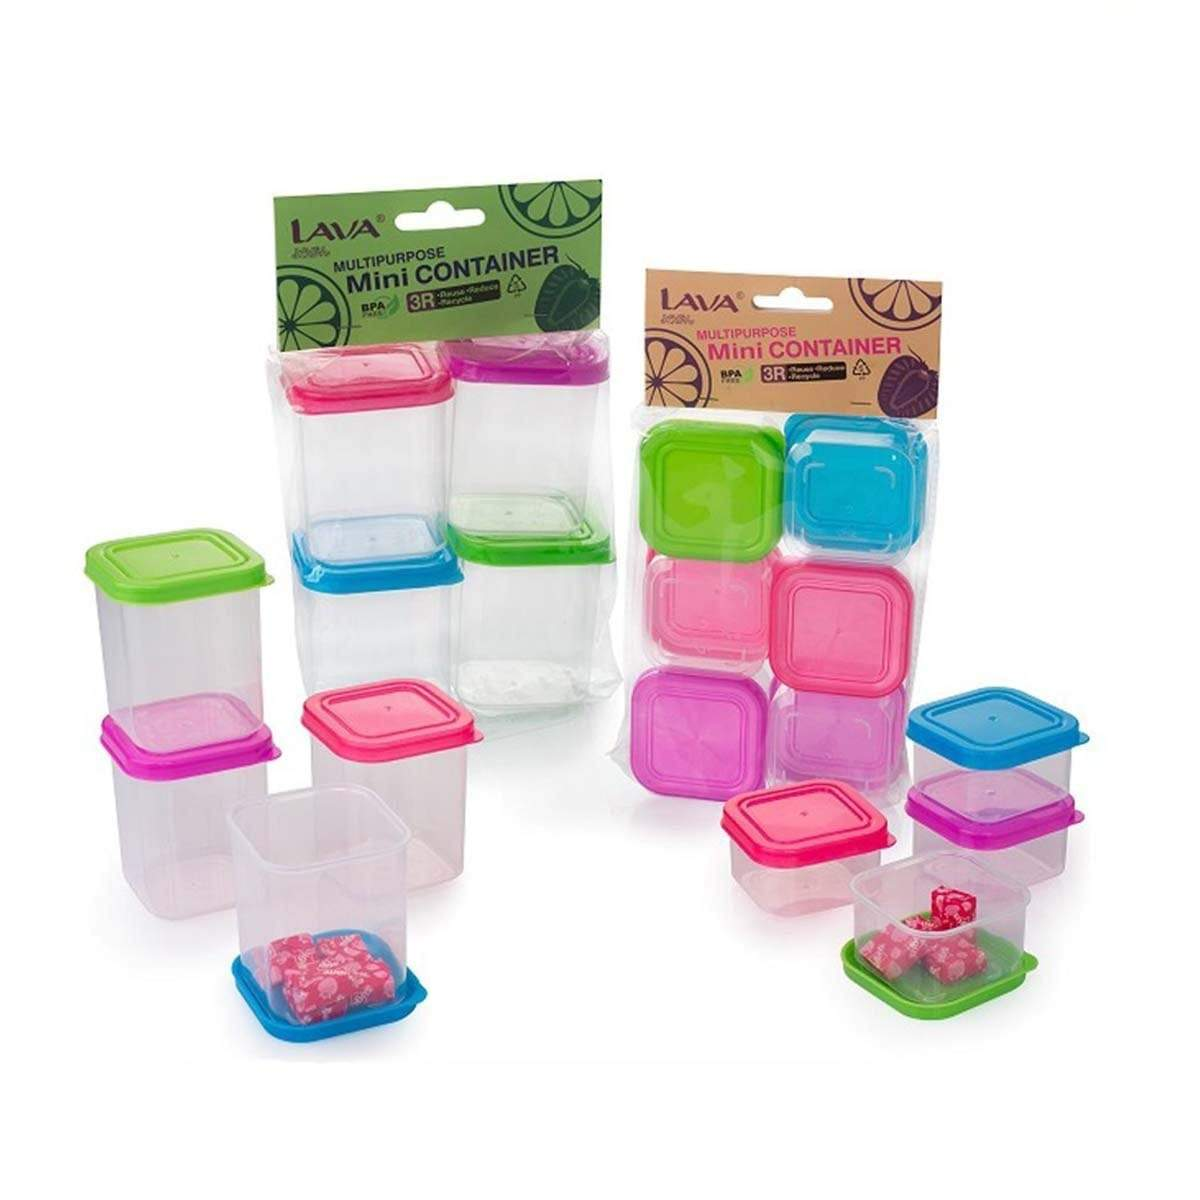 MC245 Mini Container (6 pcs) 95ml